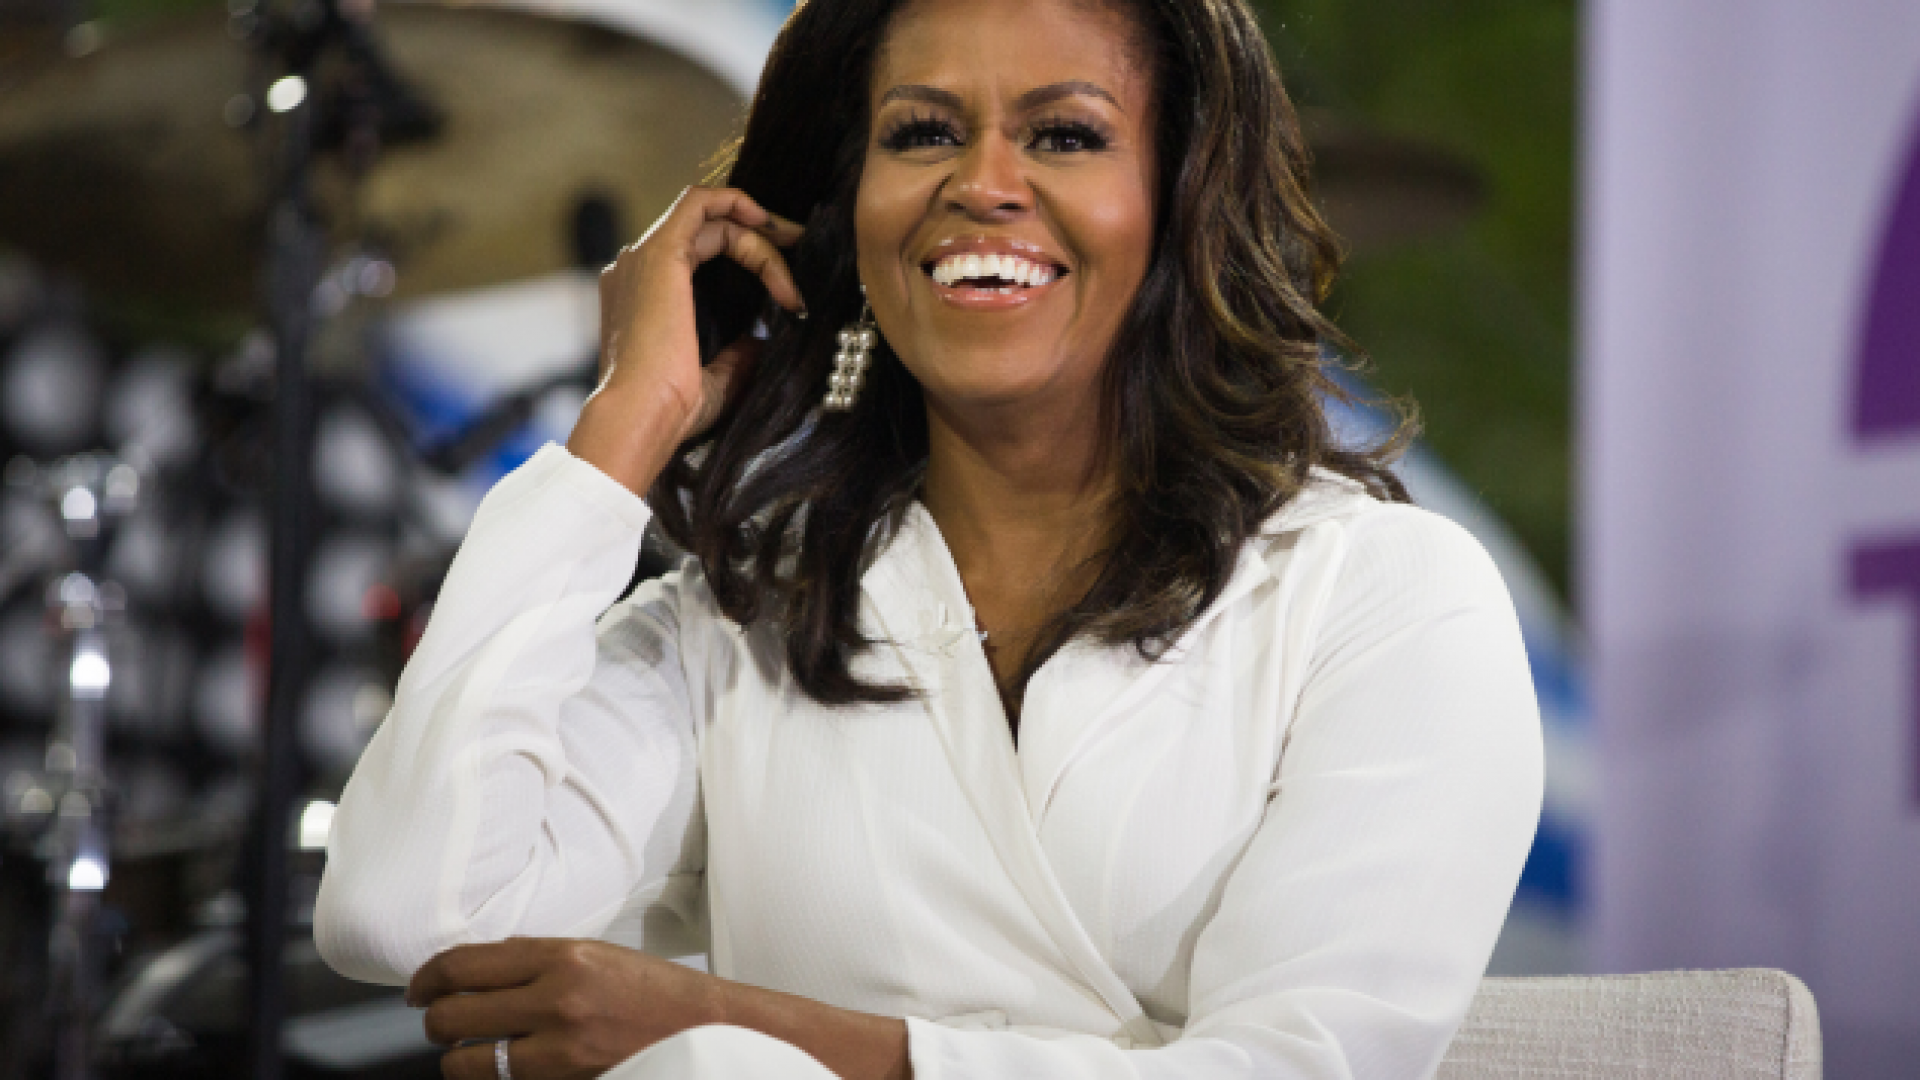 Michelle Obama Explains How She, Barack, Sasha And Malia Are Social Distancing